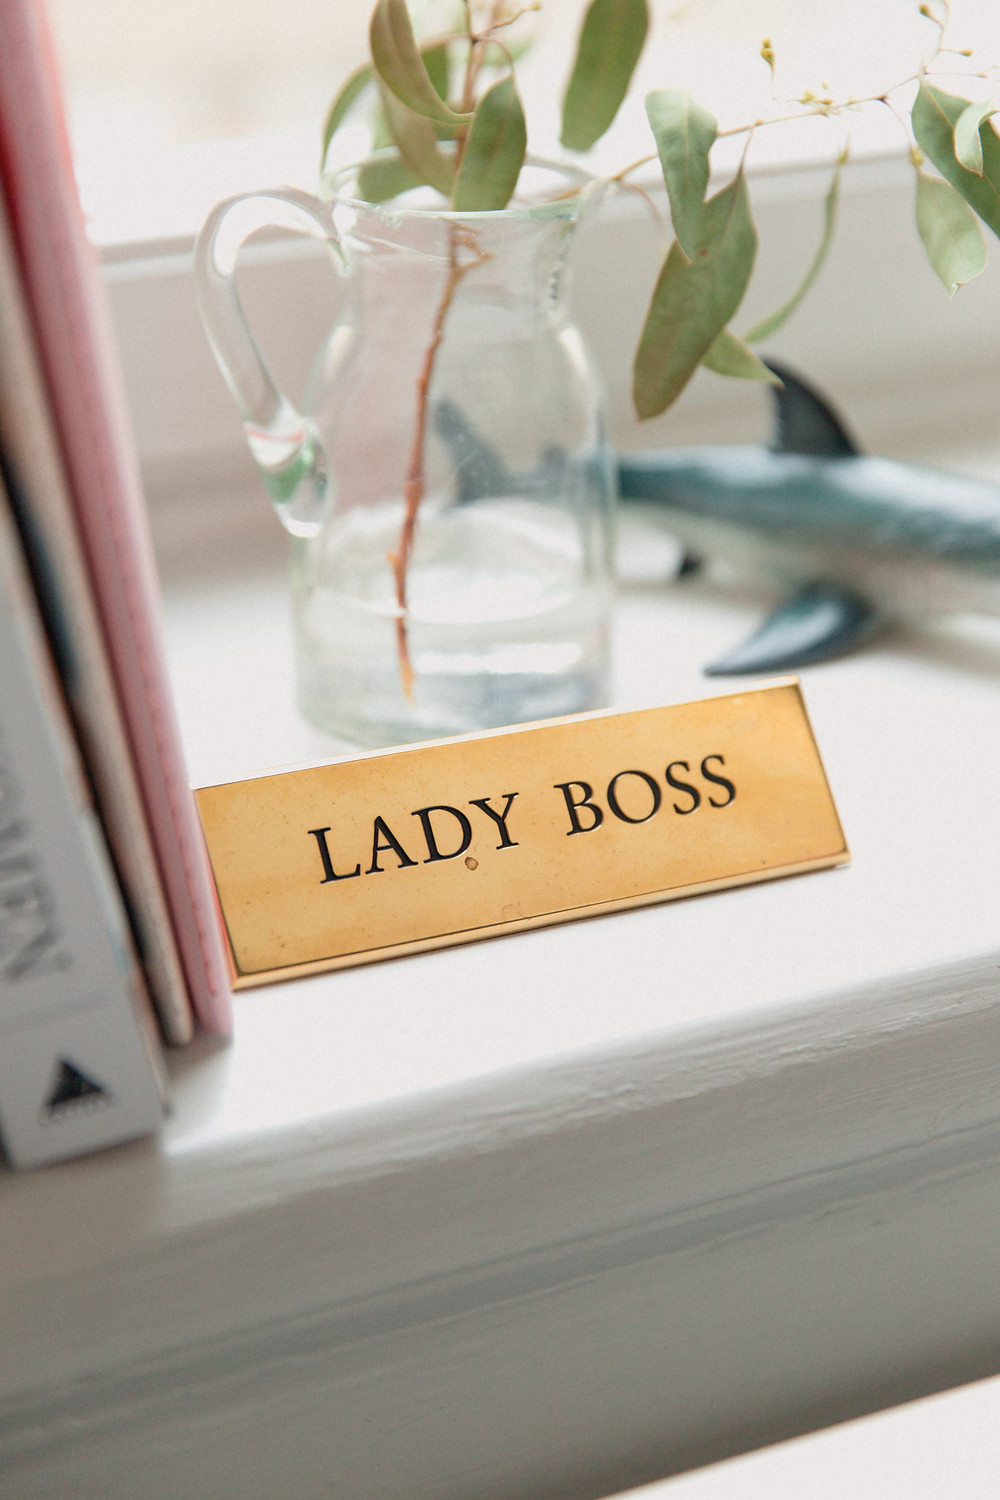 """A close up of a shelf with books and a vase holding a plant. There's a name plate that says """"Lady Boss."""""""